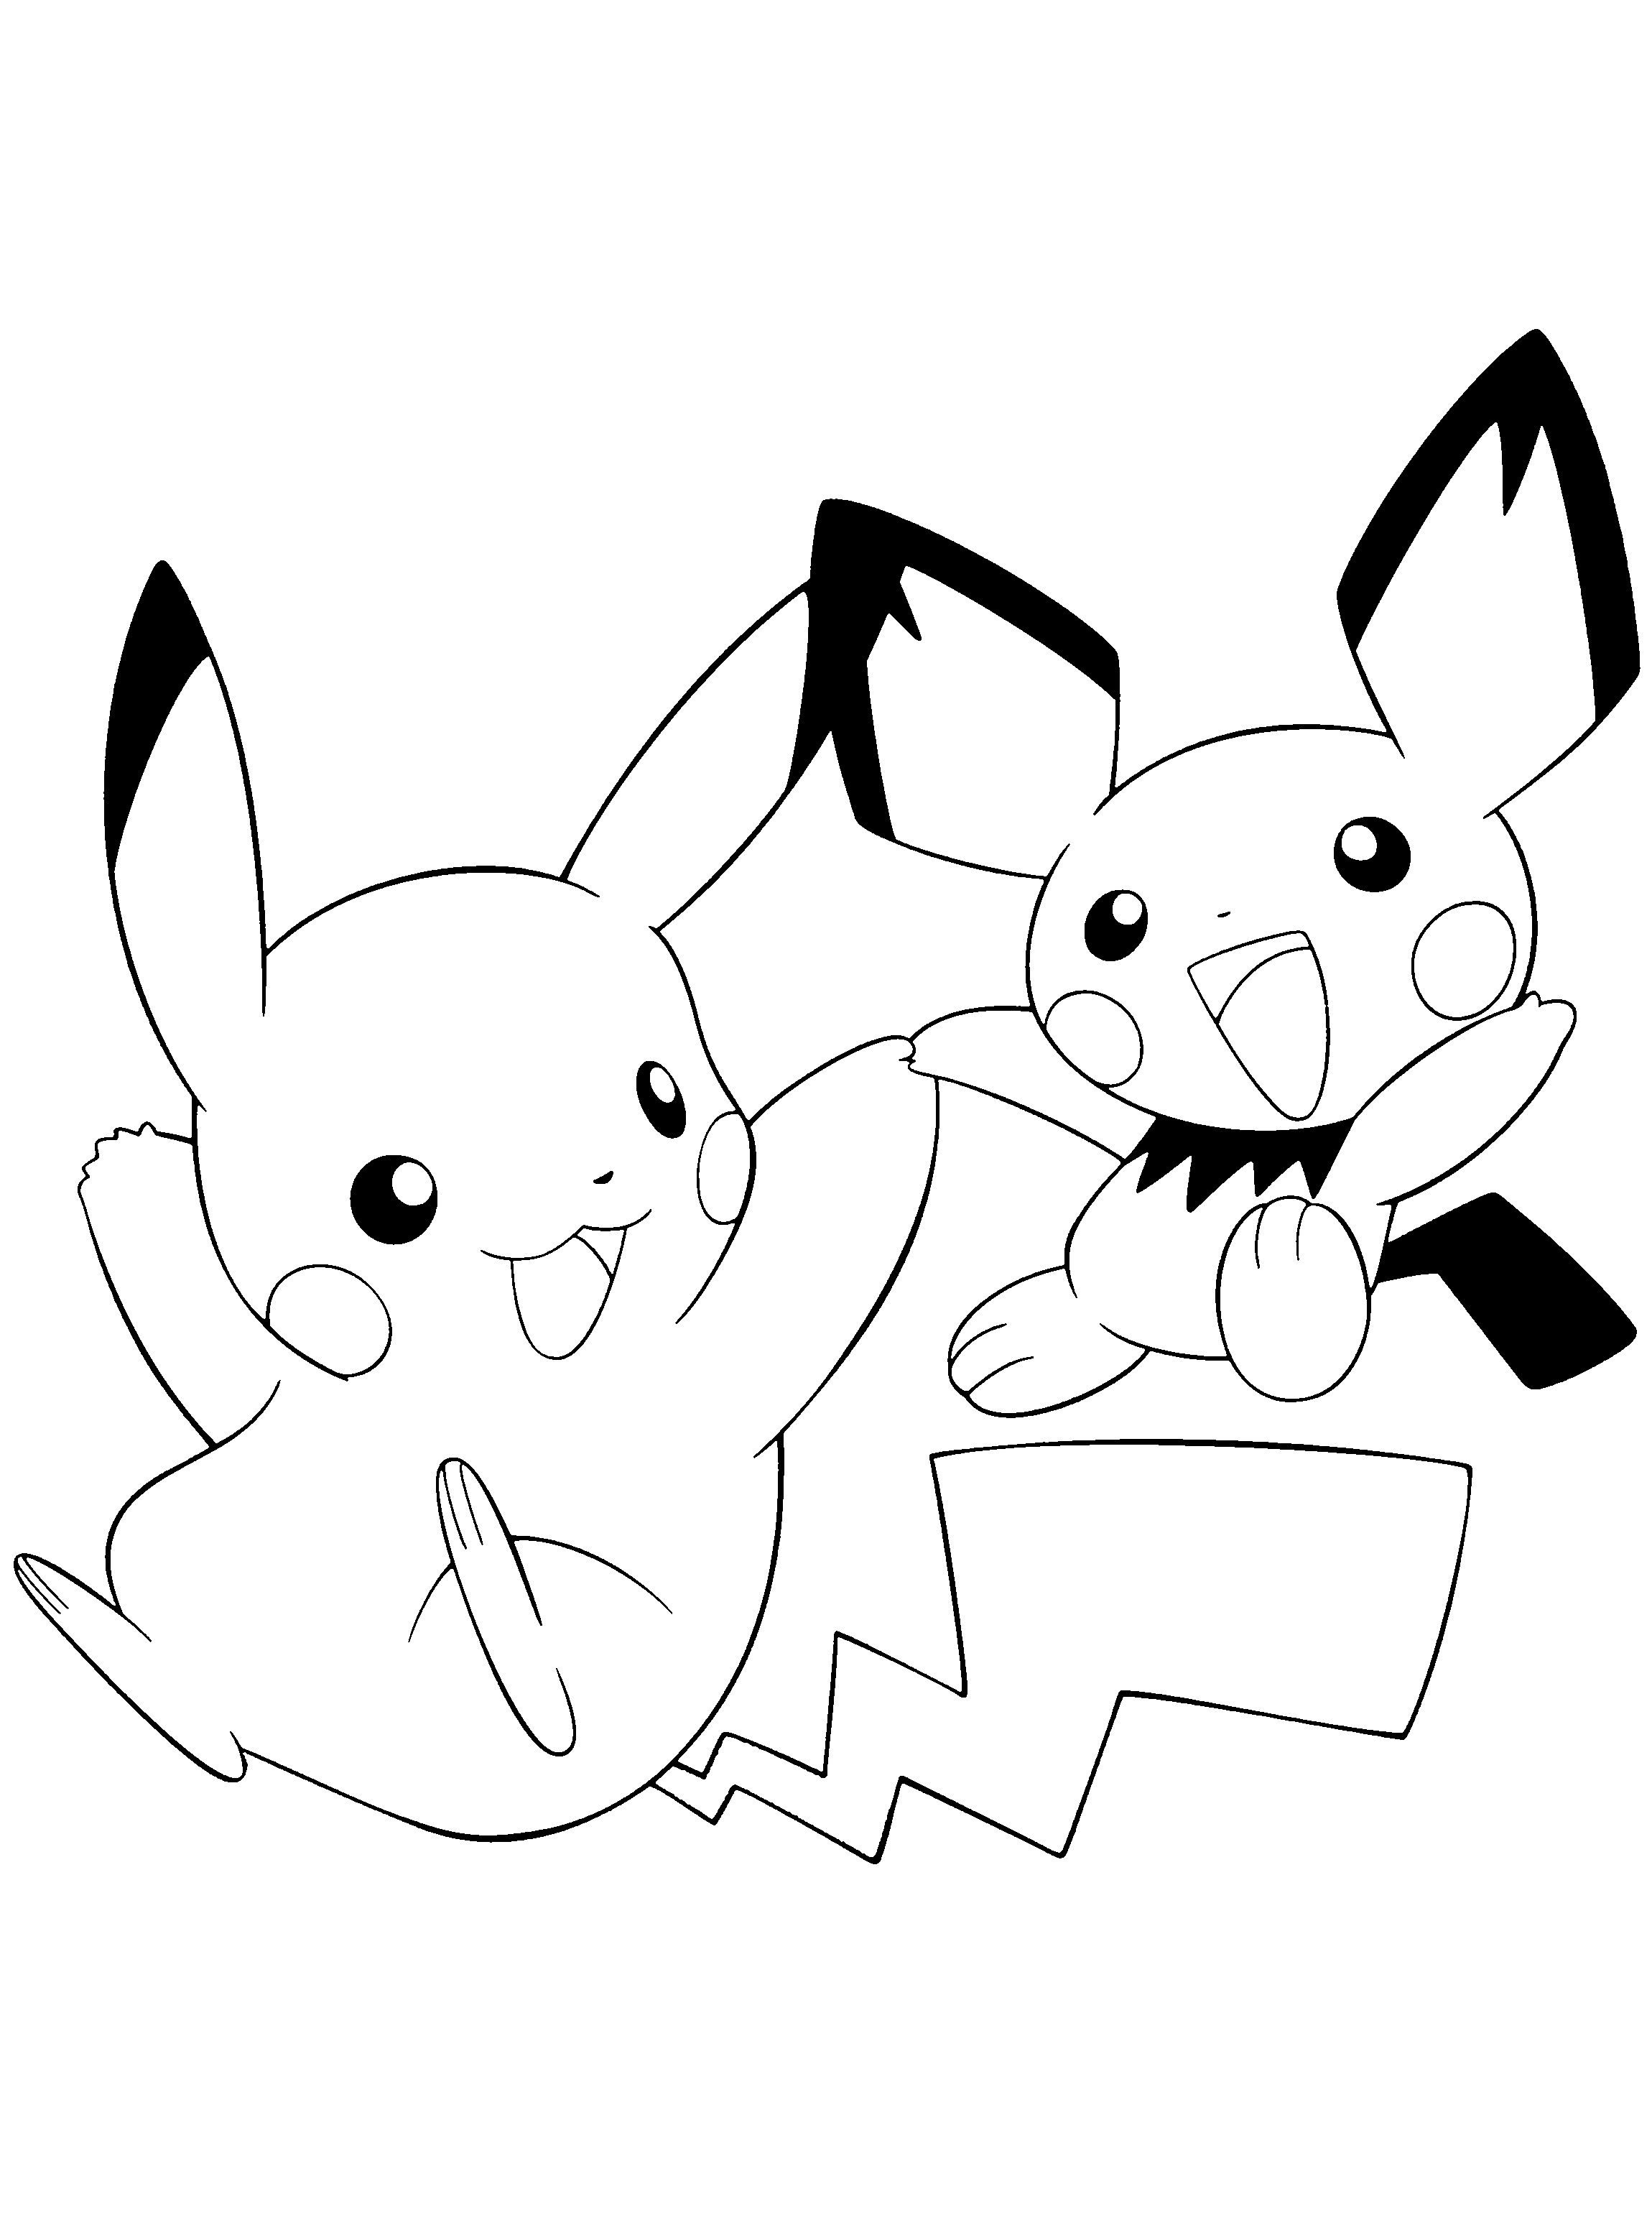 Pikachu And Pichu Coloring Pages   crazypurplemama